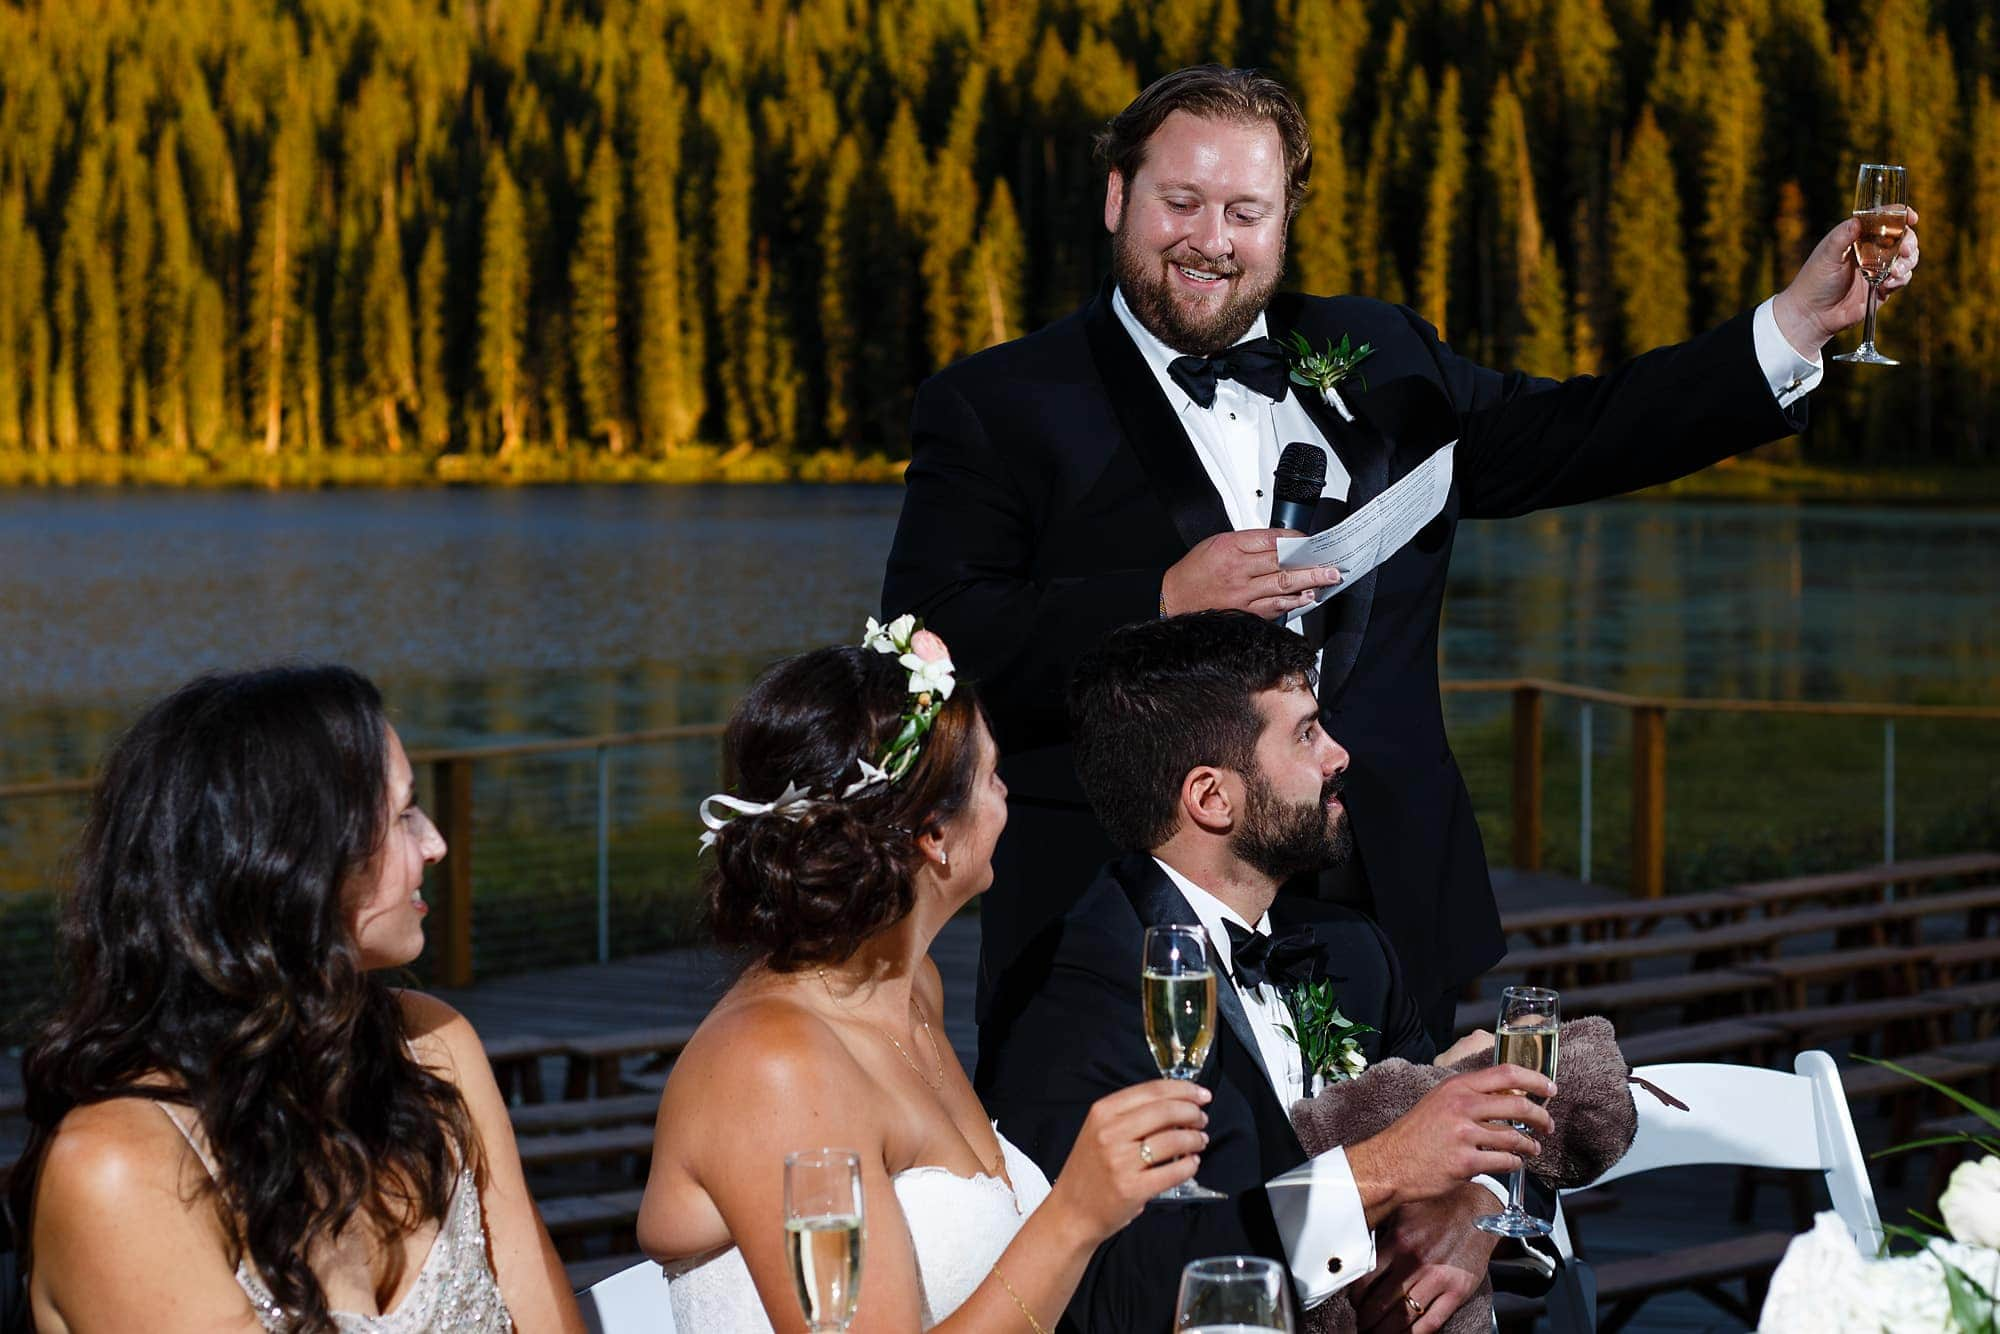 The best man toasts to the bride and groom during the reception.